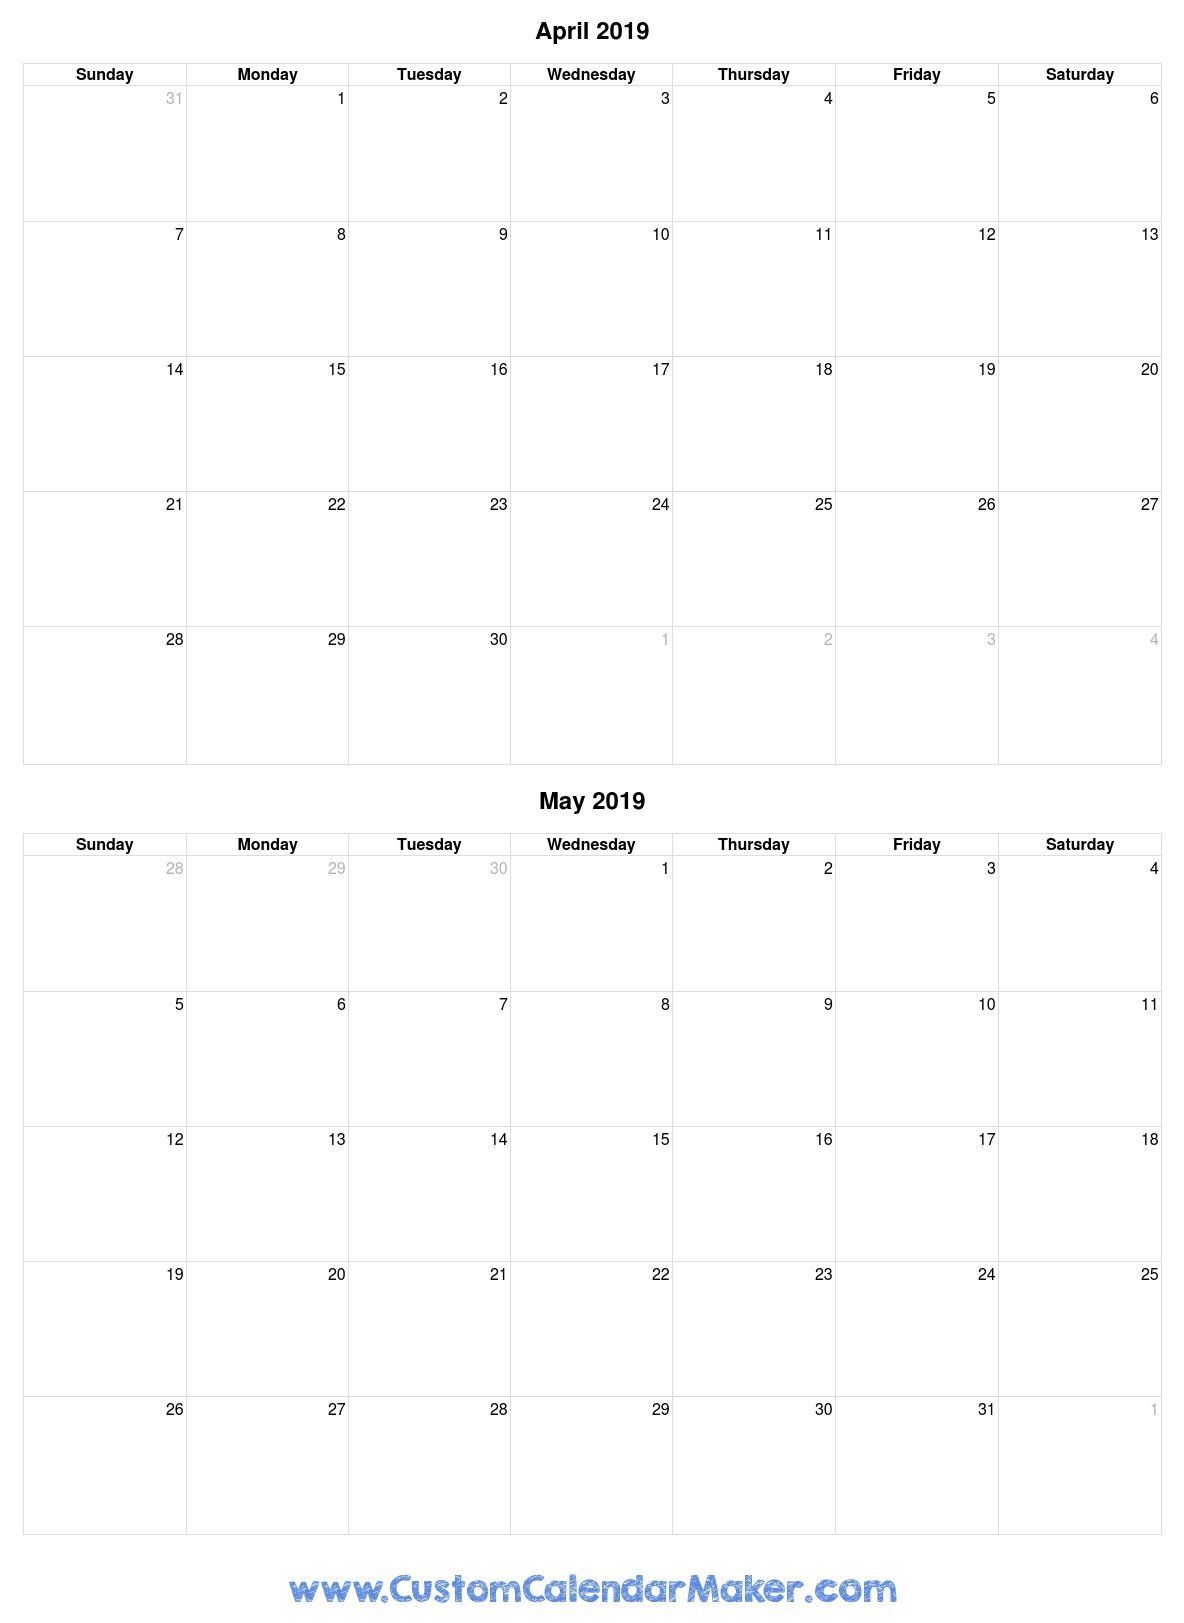 April And May 2019 Free Printable Calendar Template Calendar 2019 April May